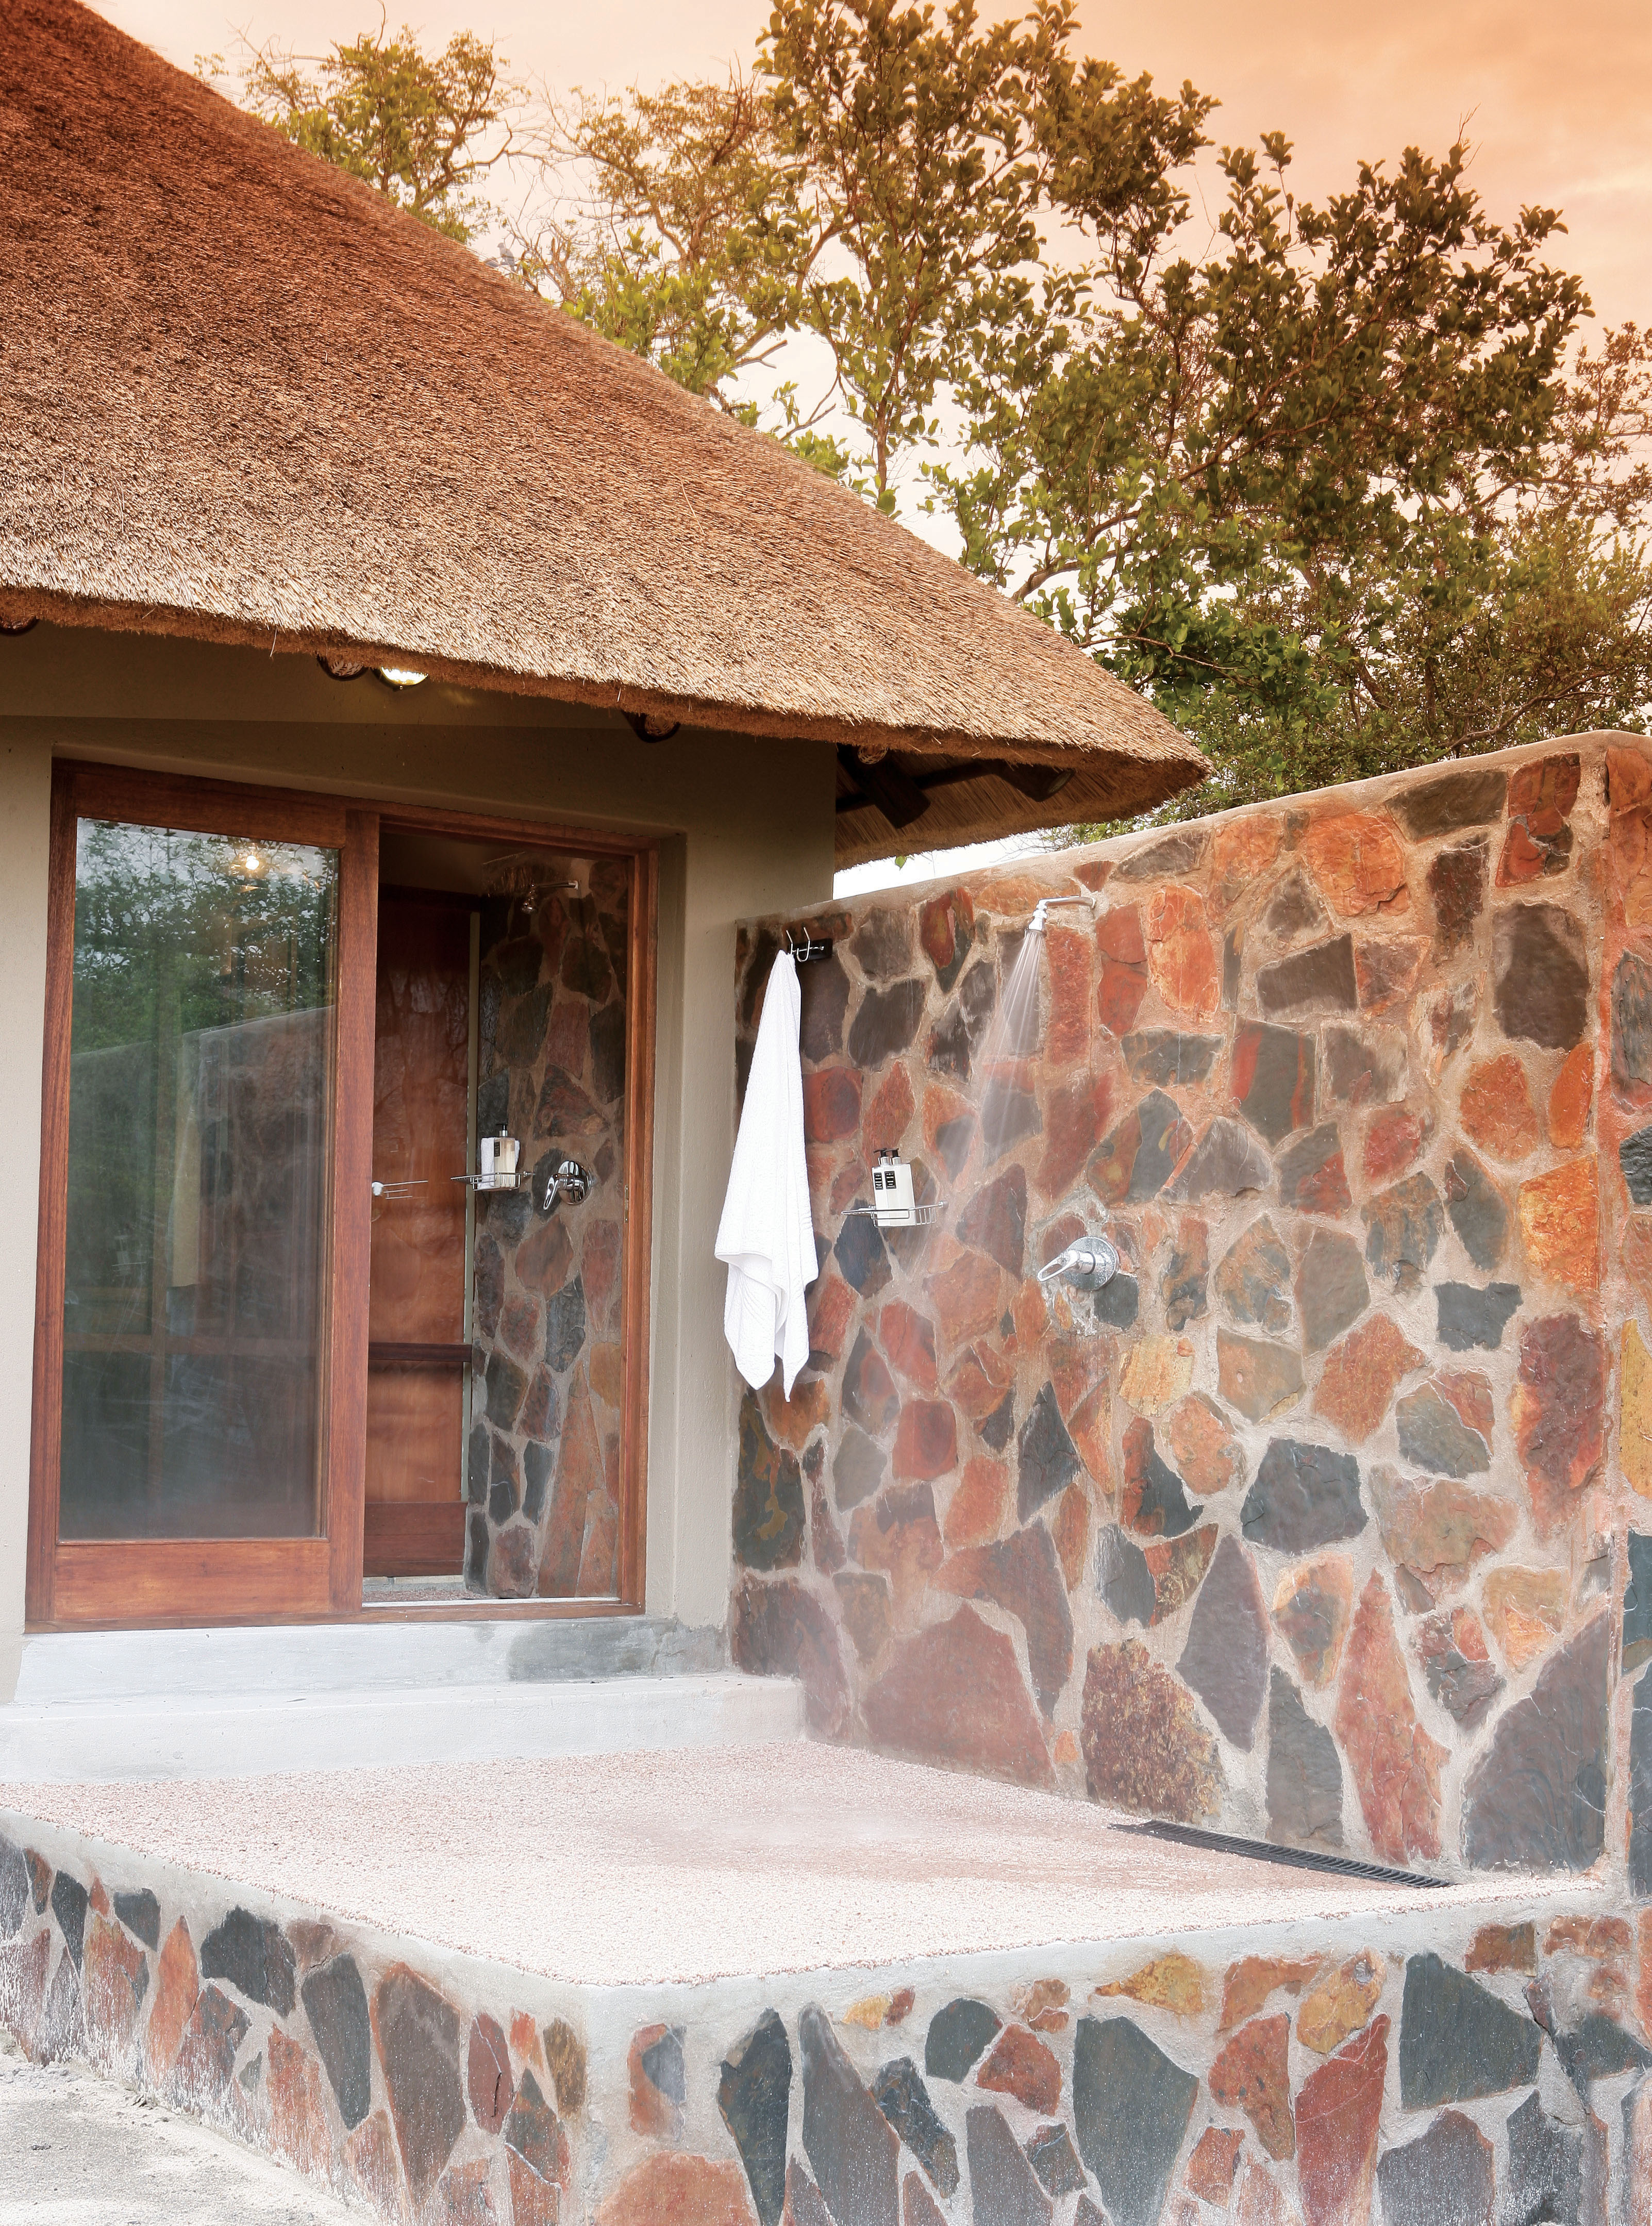 Arathusa-Outdoor shower of a Remote Luxury Suite